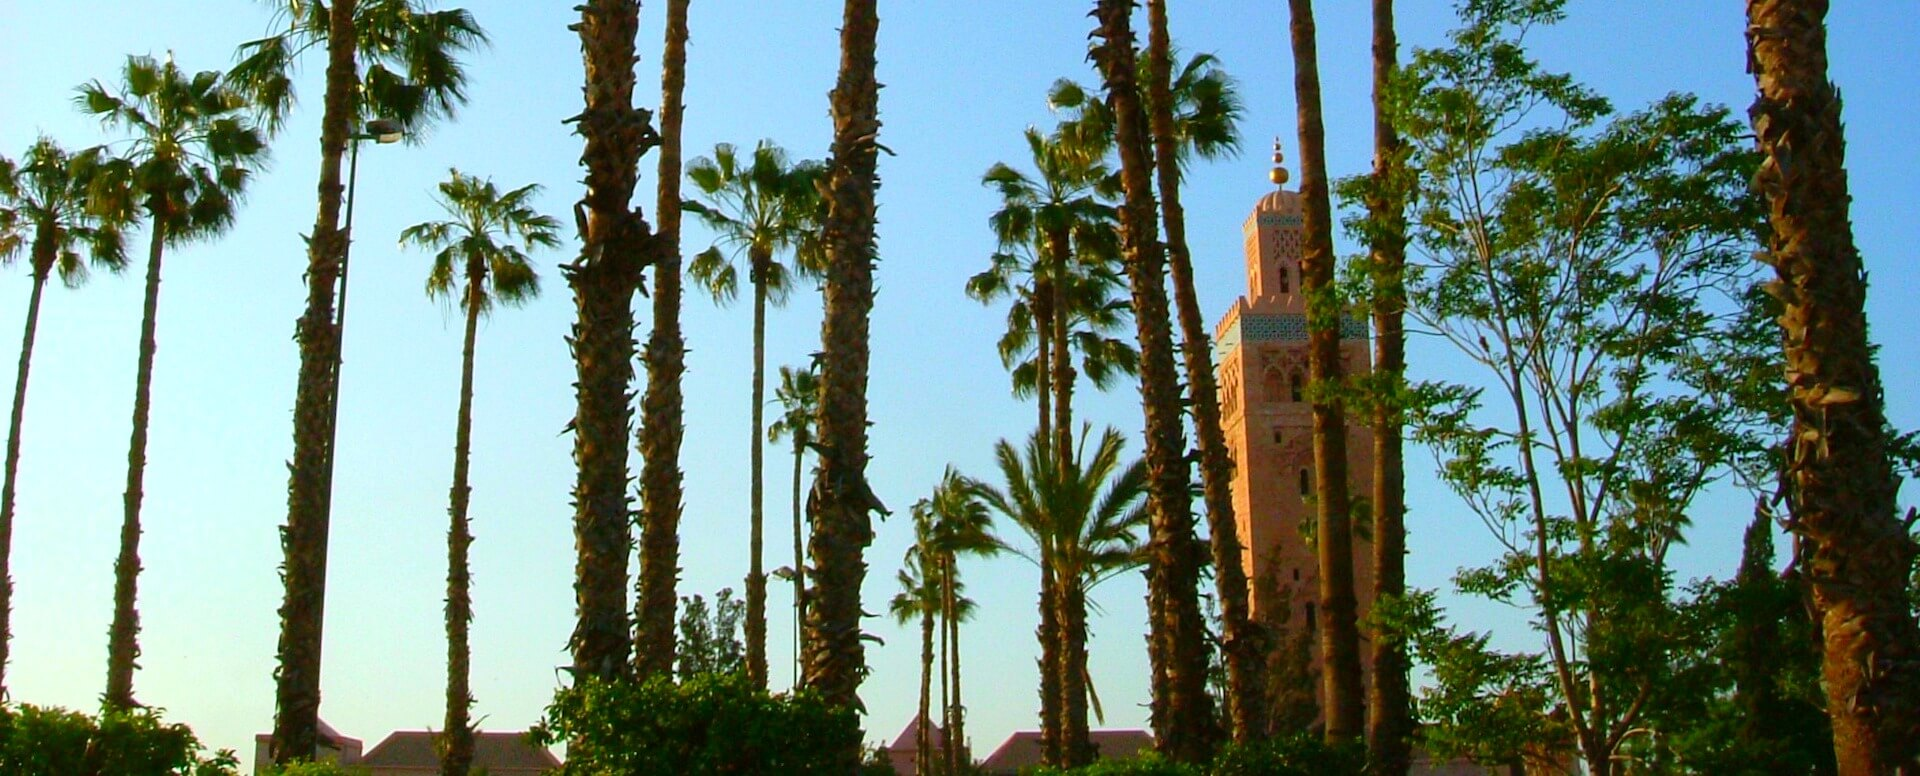 Weather and climate in Marrakech - Marrakech